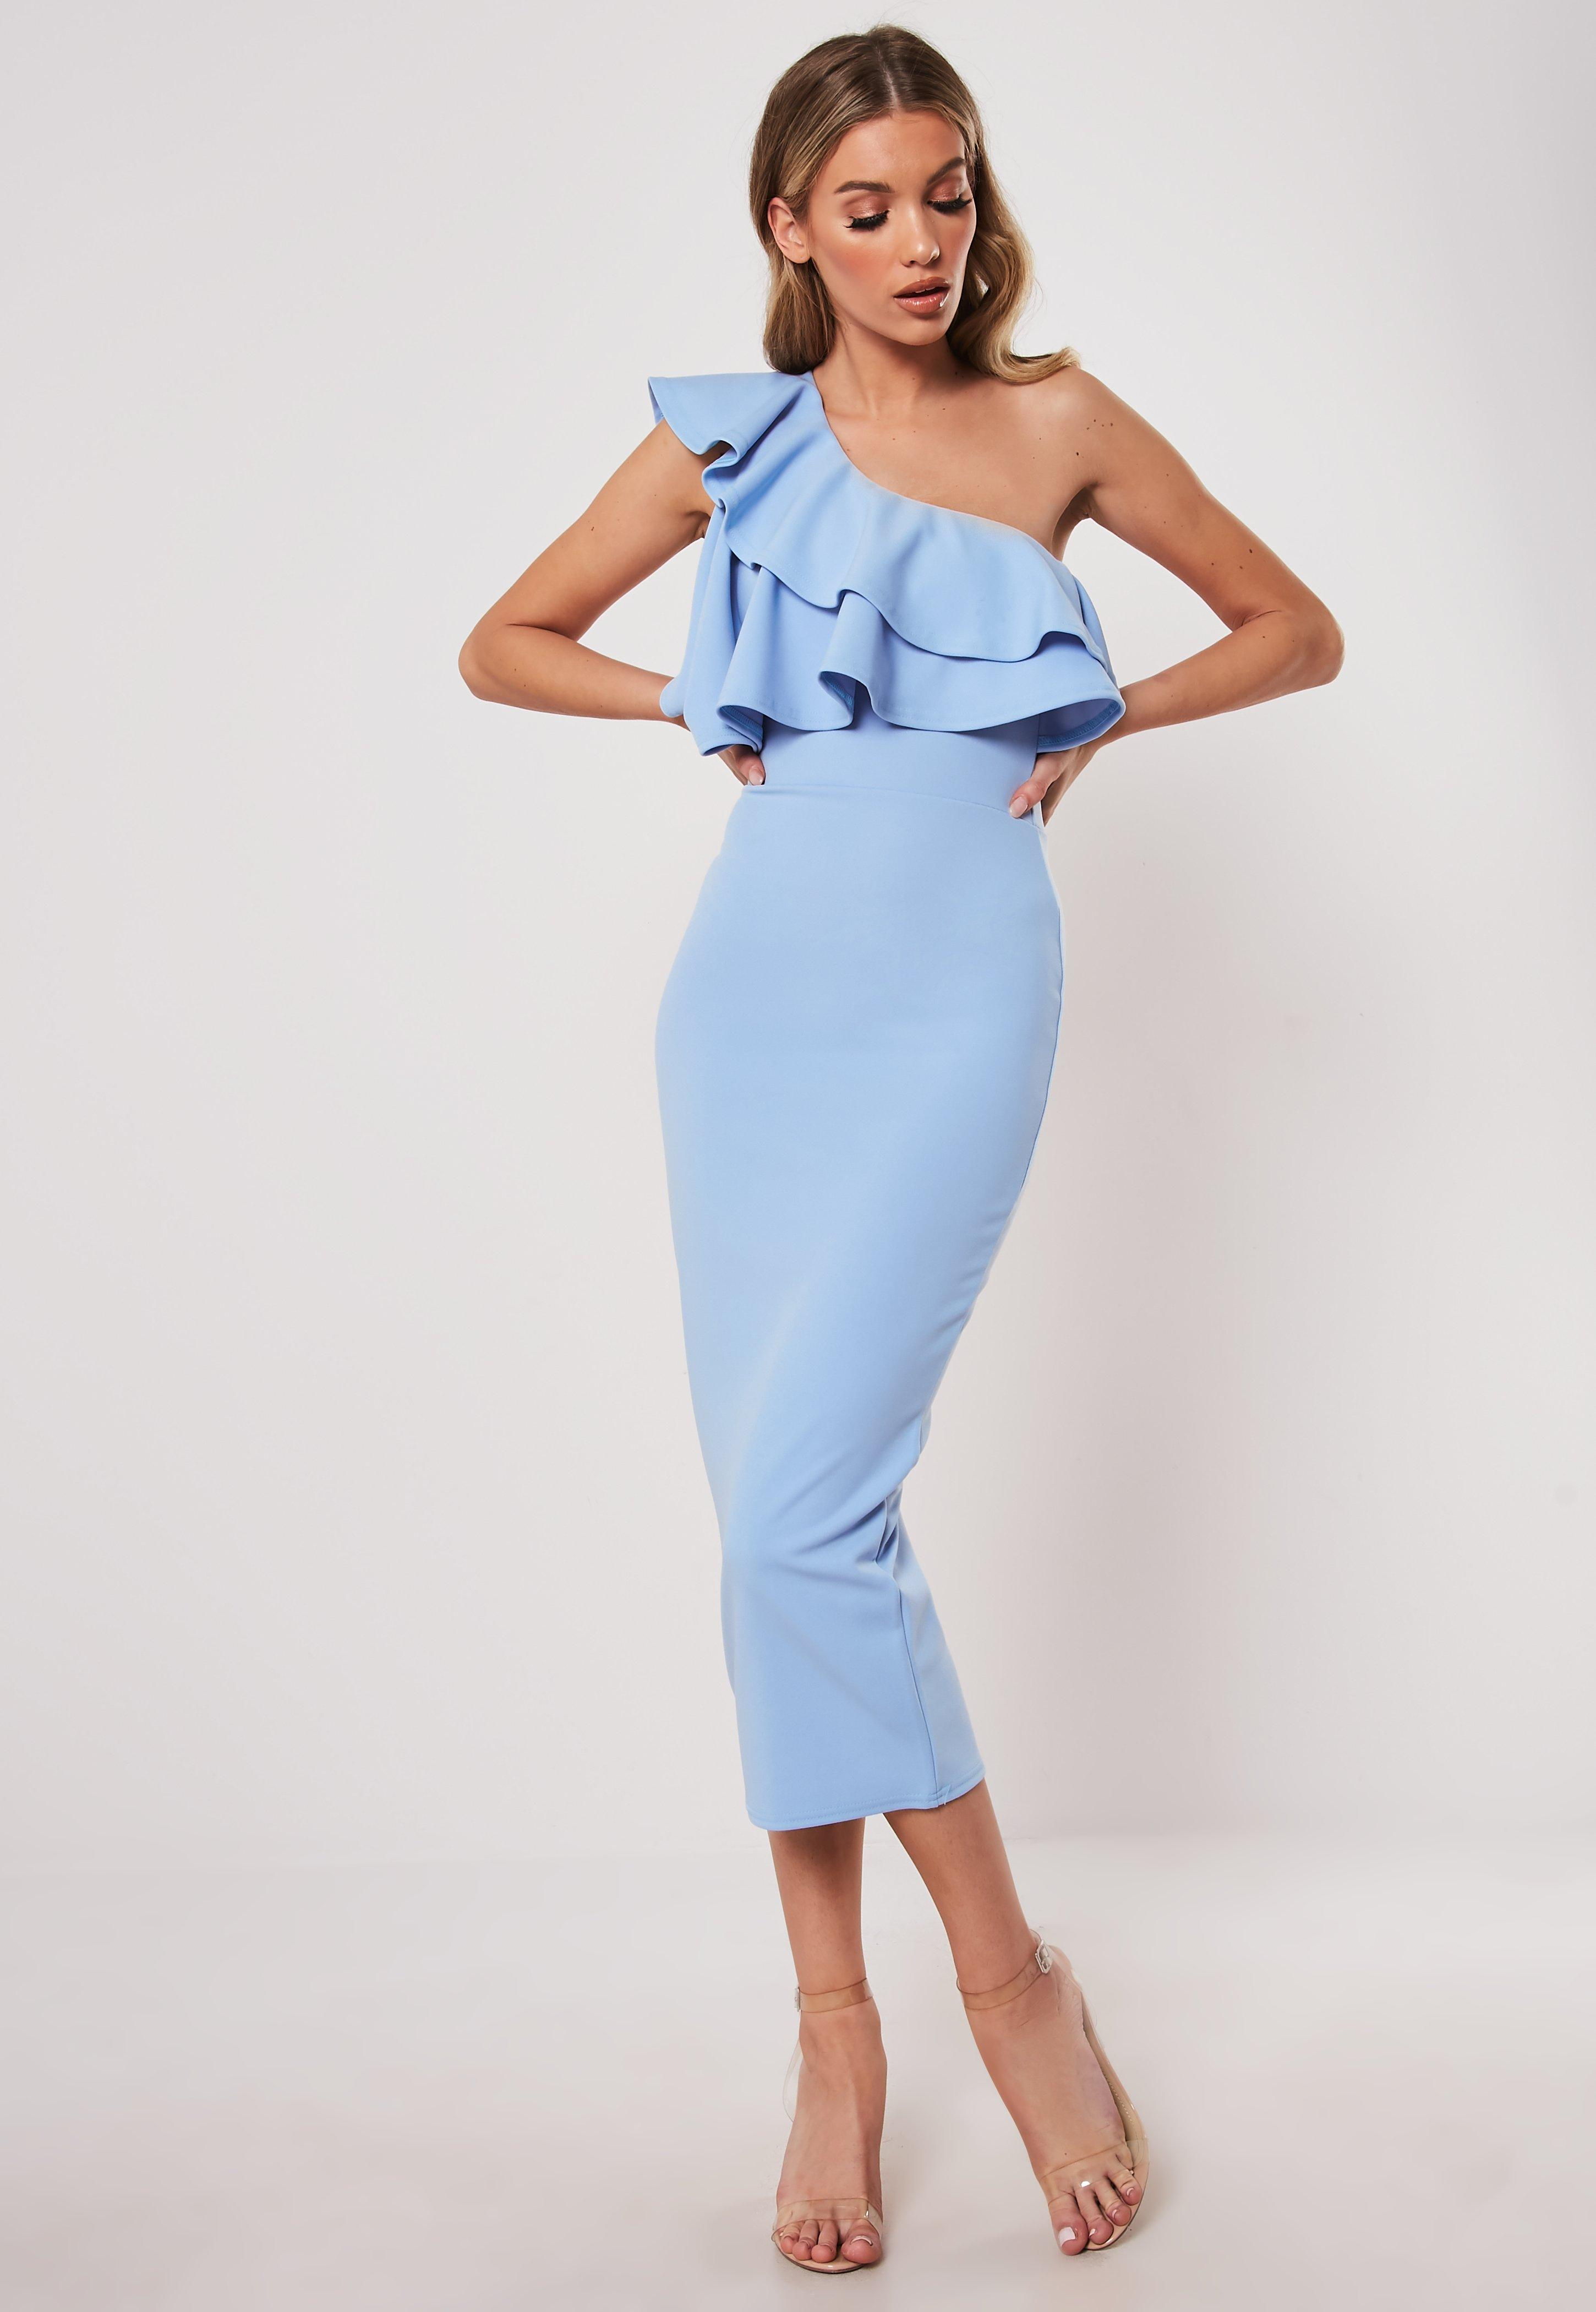 599c78481b Dresses | Cute Dresses For Women | Missguided